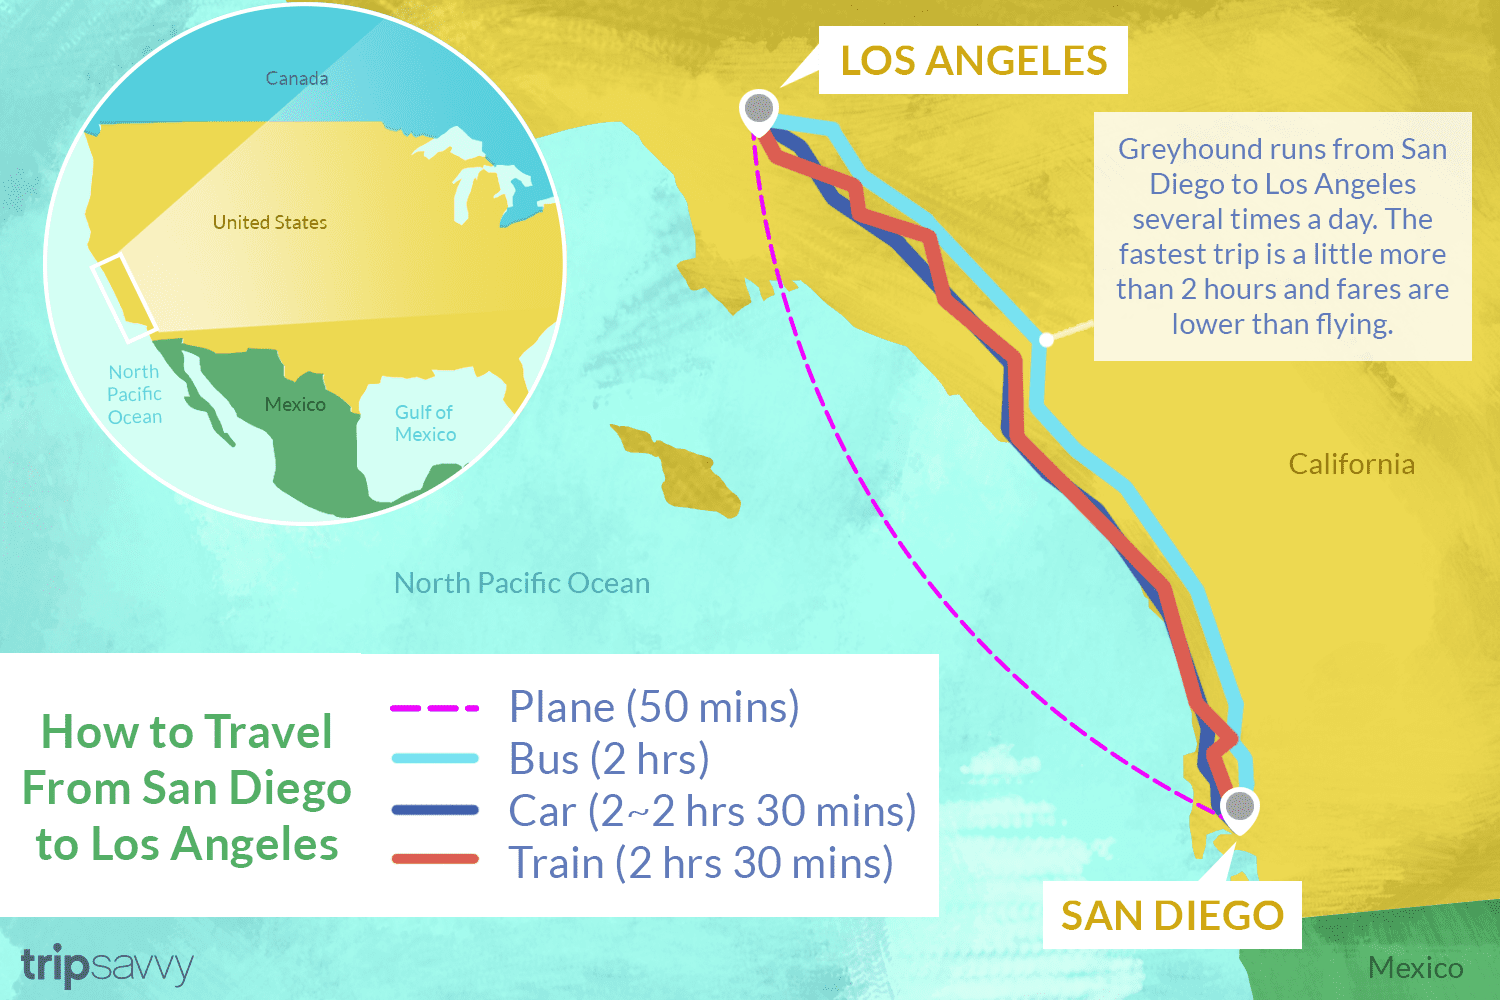 San Diego to Los Angeles - All of the Travel Options